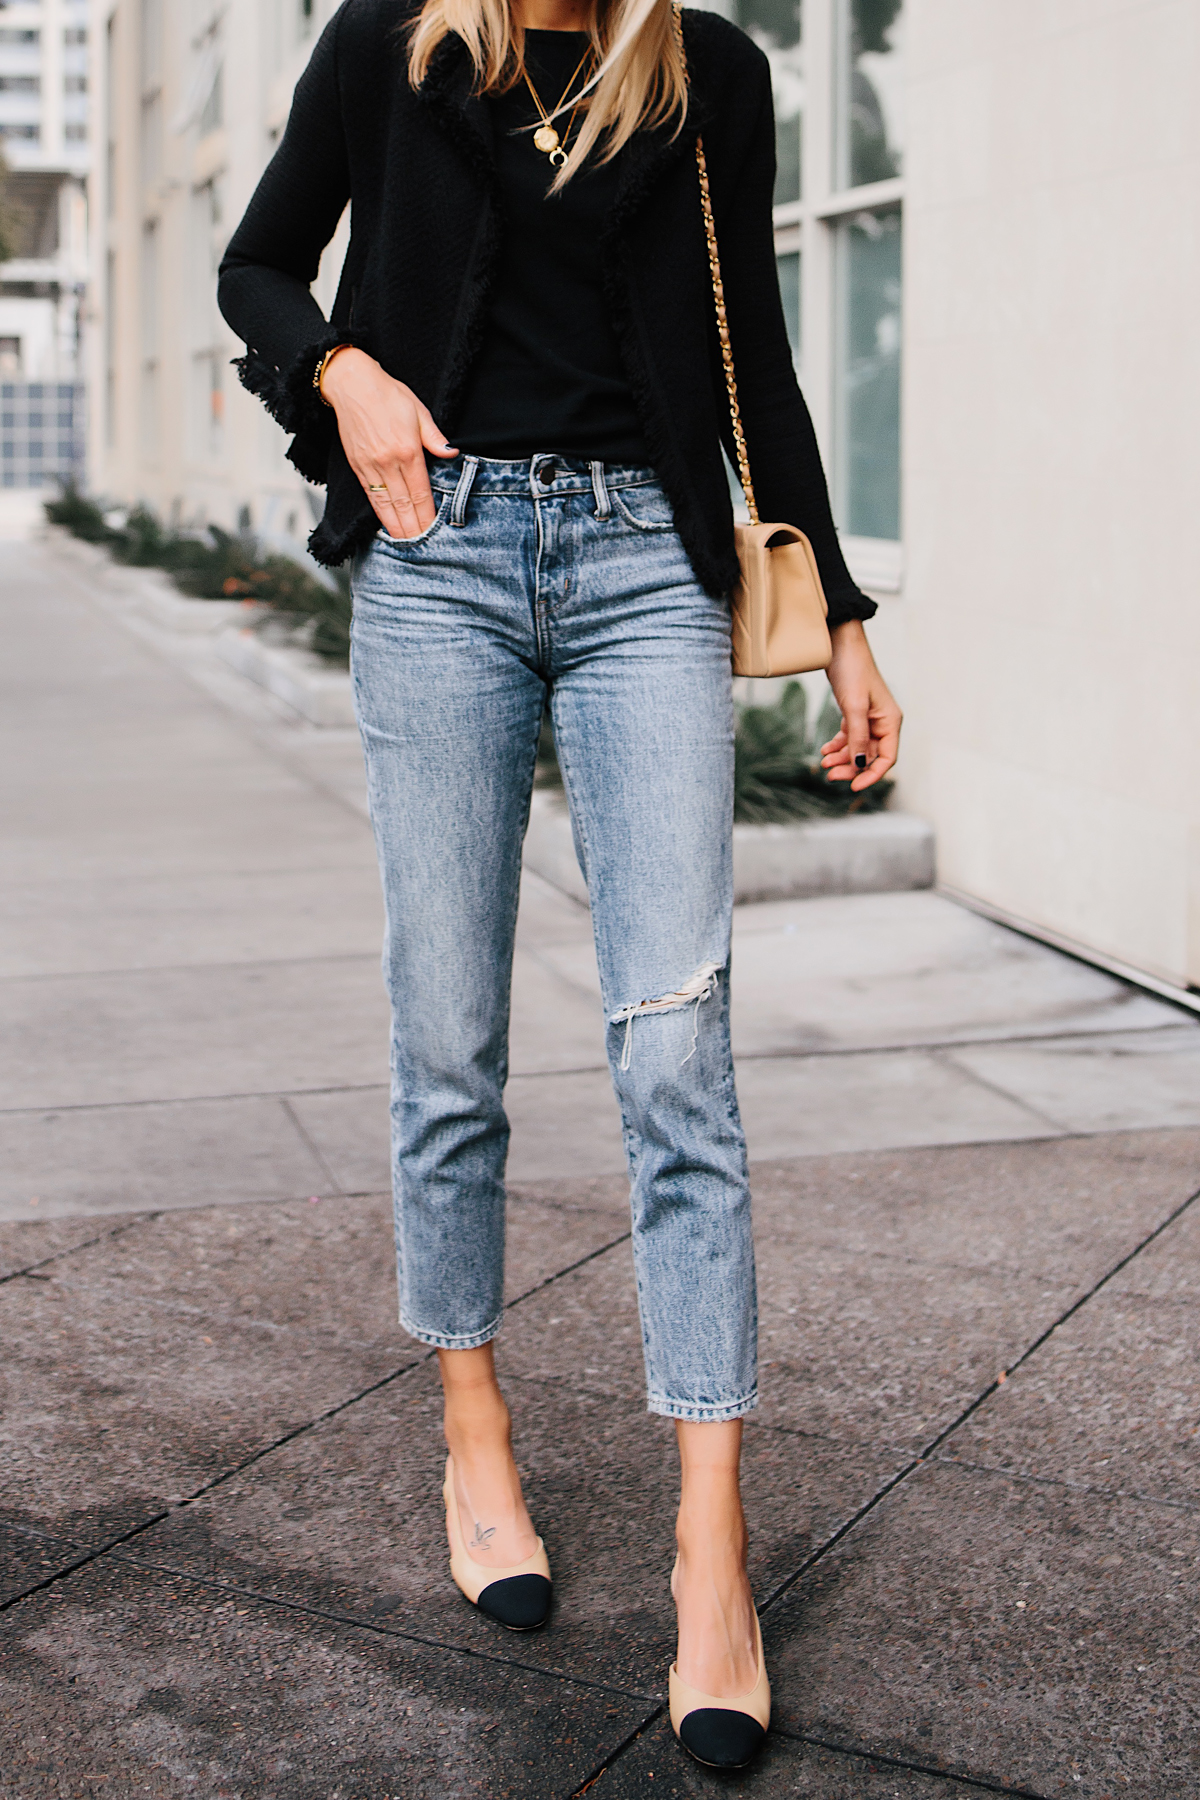 Woman Wearing Black Tweed Relaxed Jacket Jeans Outfit Chanel Tan Diana Handbag Chanel Slingback Shoes Fashion Jackson San Diego Fashion Blogger Street Style